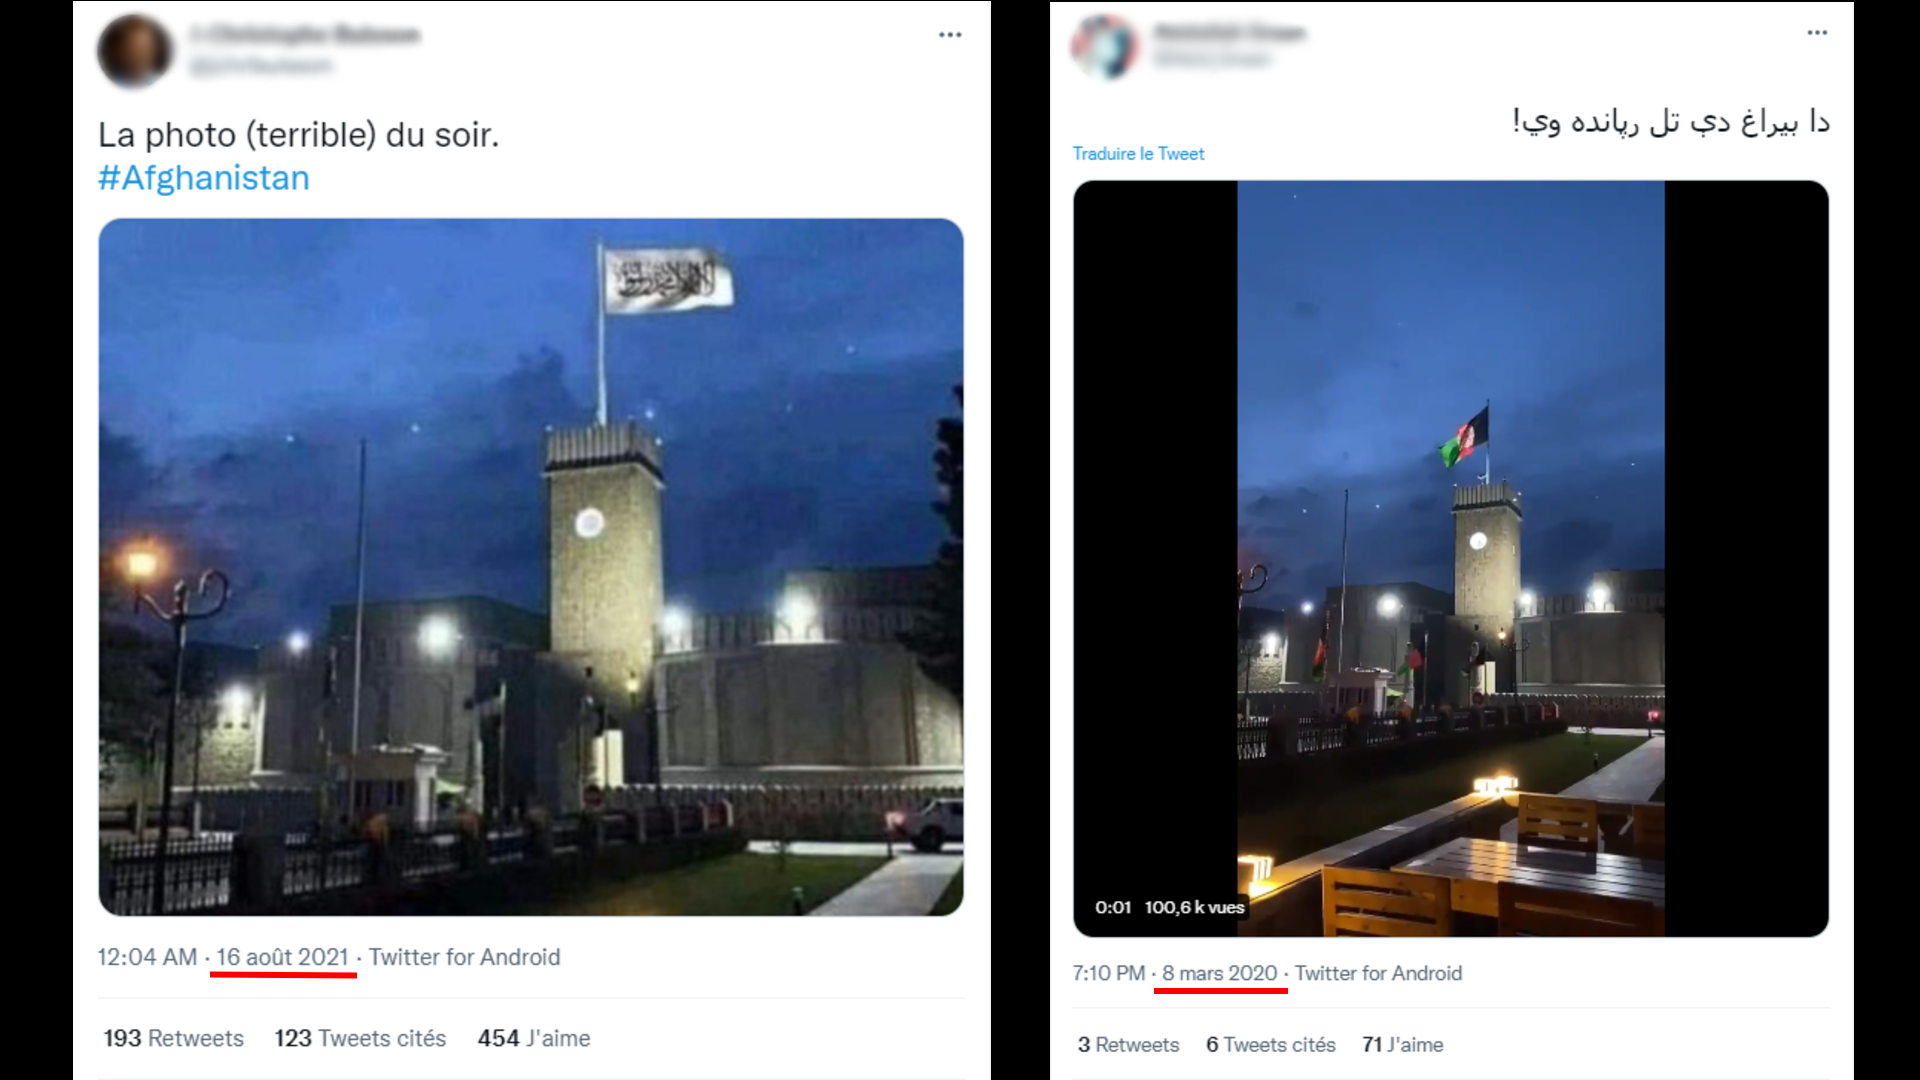 """Left: A screenshot of a Twitter post from August 16, 2021 with the caption, """"(Terrible) photo of the evening"""" above a photoshopped image of the Taliban flag. Right: A Twitter post from March 8, 2020 with the original video, showing the Afghan flag over the presidential palace."""